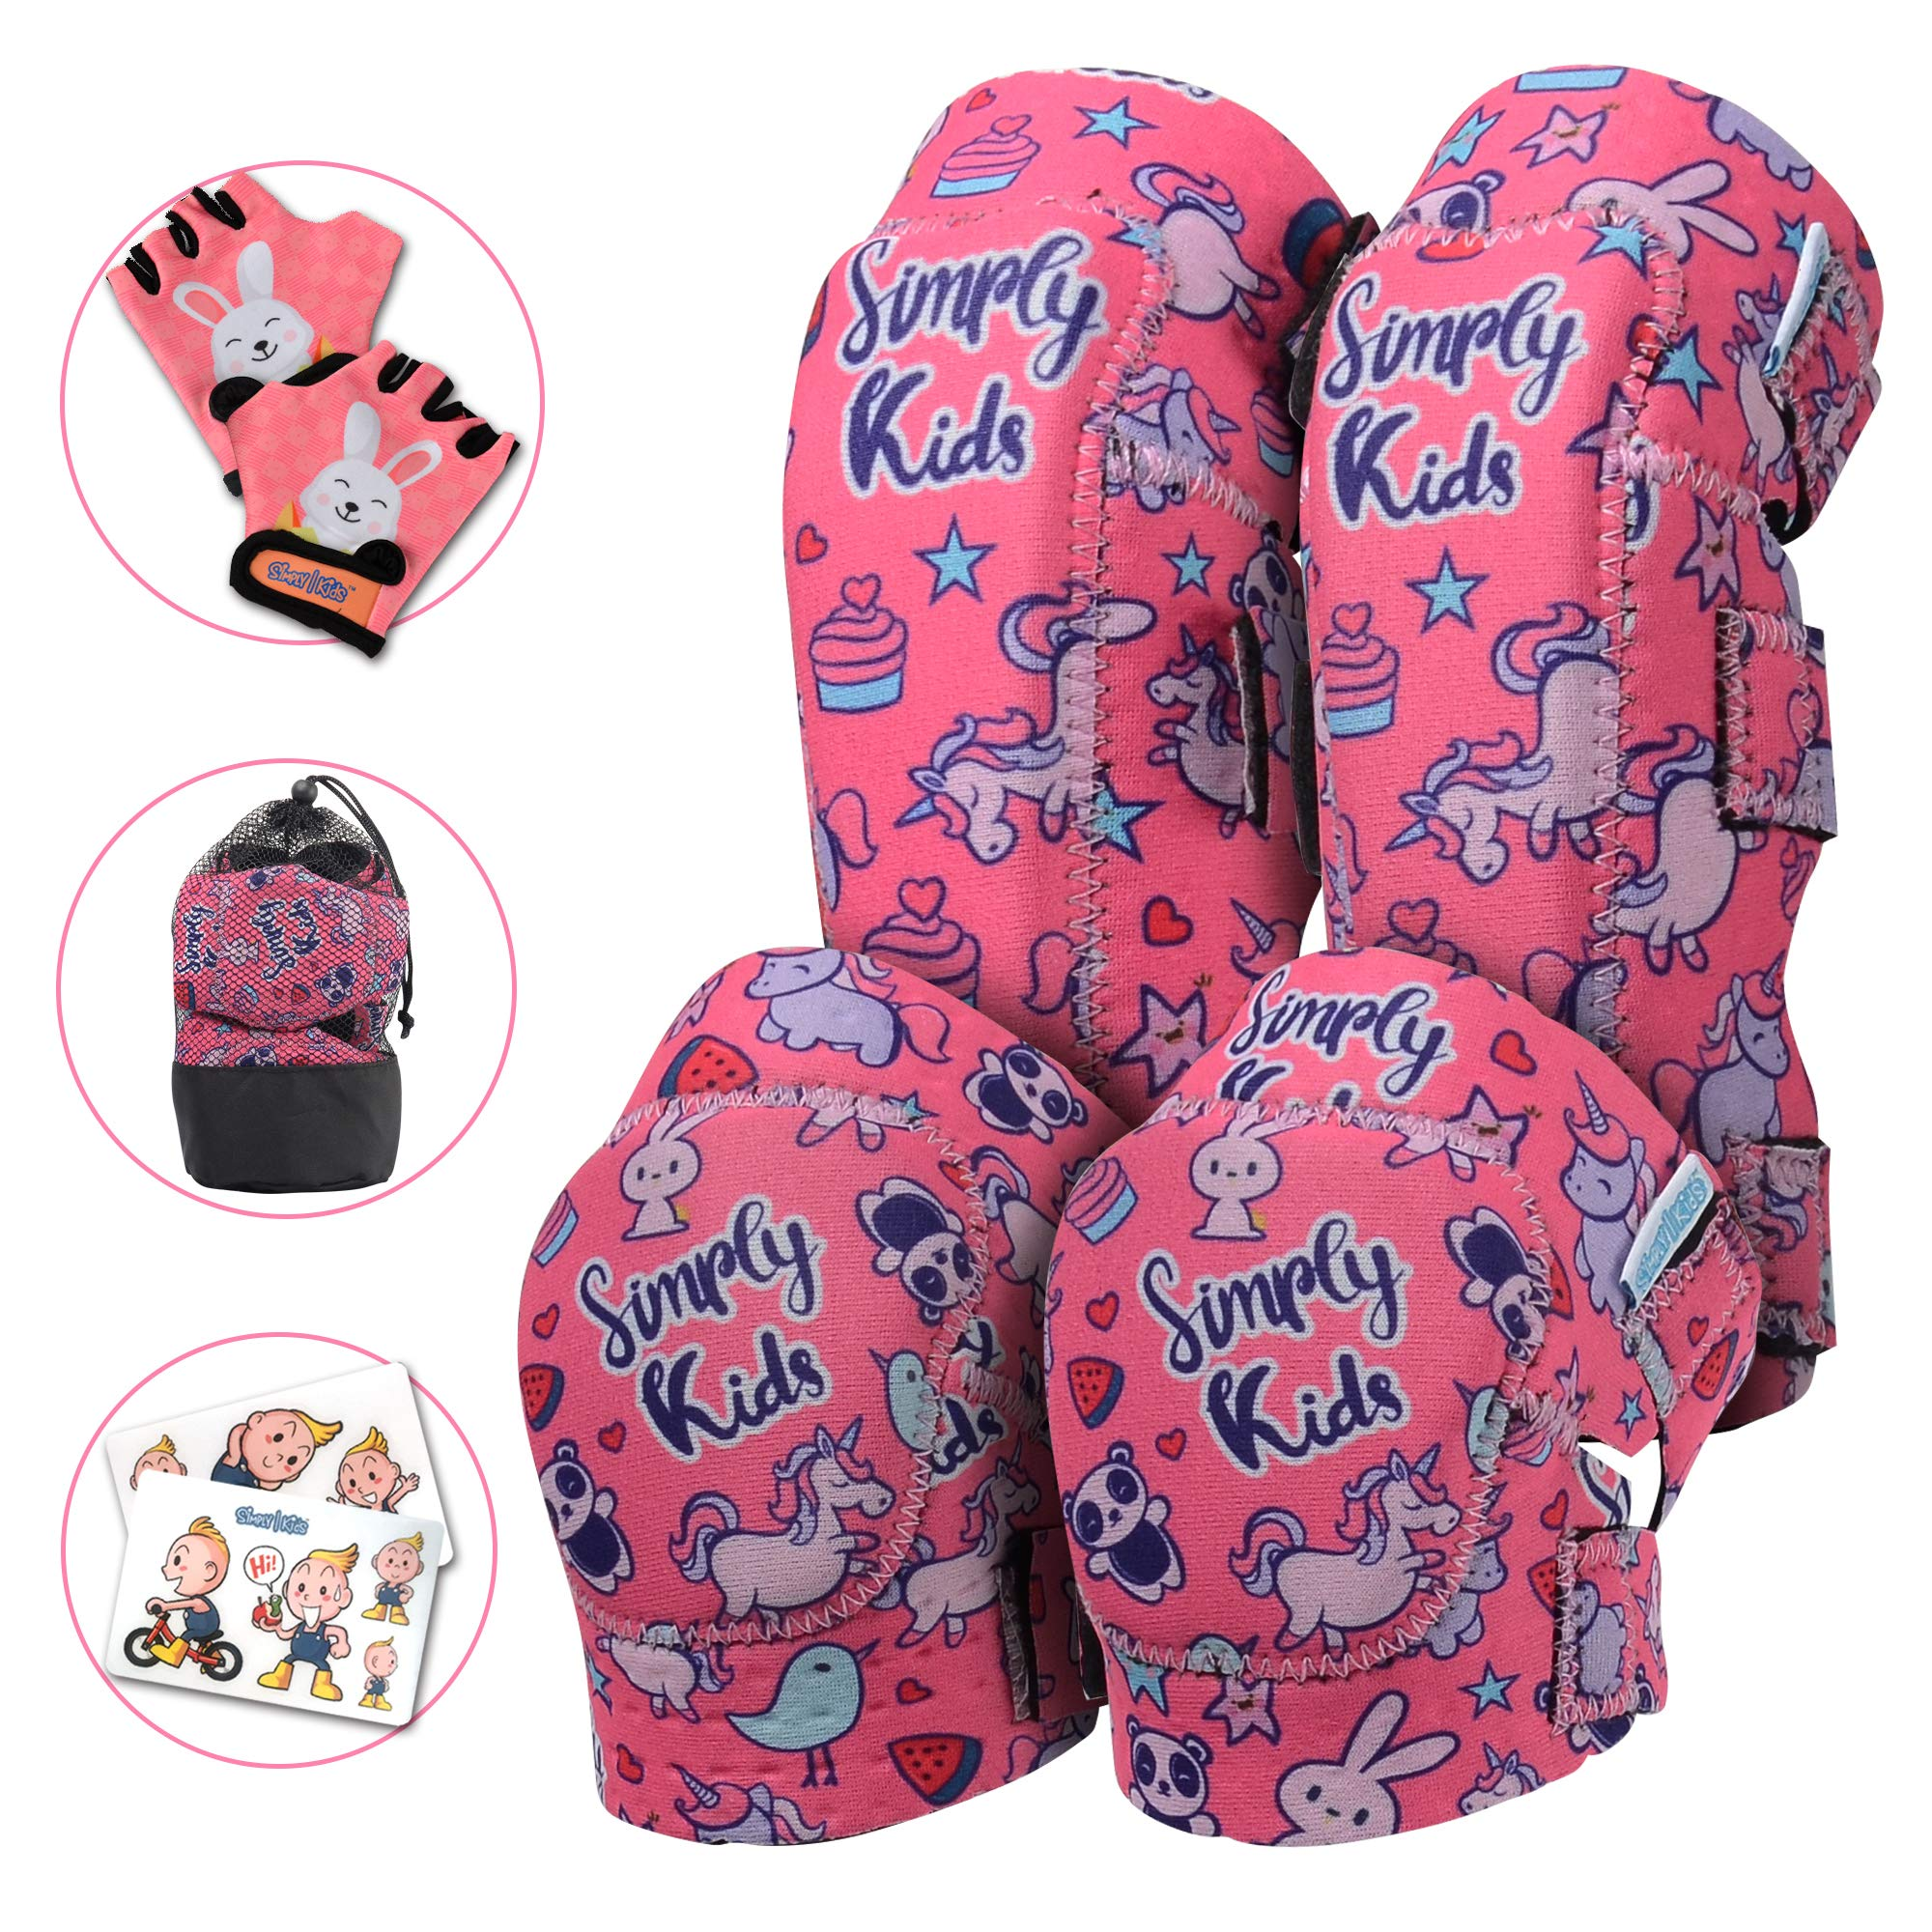 Elbow and Knee Pads for Kids with Bike Gloves | Kids Protective Gear Set | Kids Knee and Elbow Pads | Kids Knee Pads | Roller-Skating, Skateboard, Bike for Children Boys Girls (Unicorn, Medium 4-8)